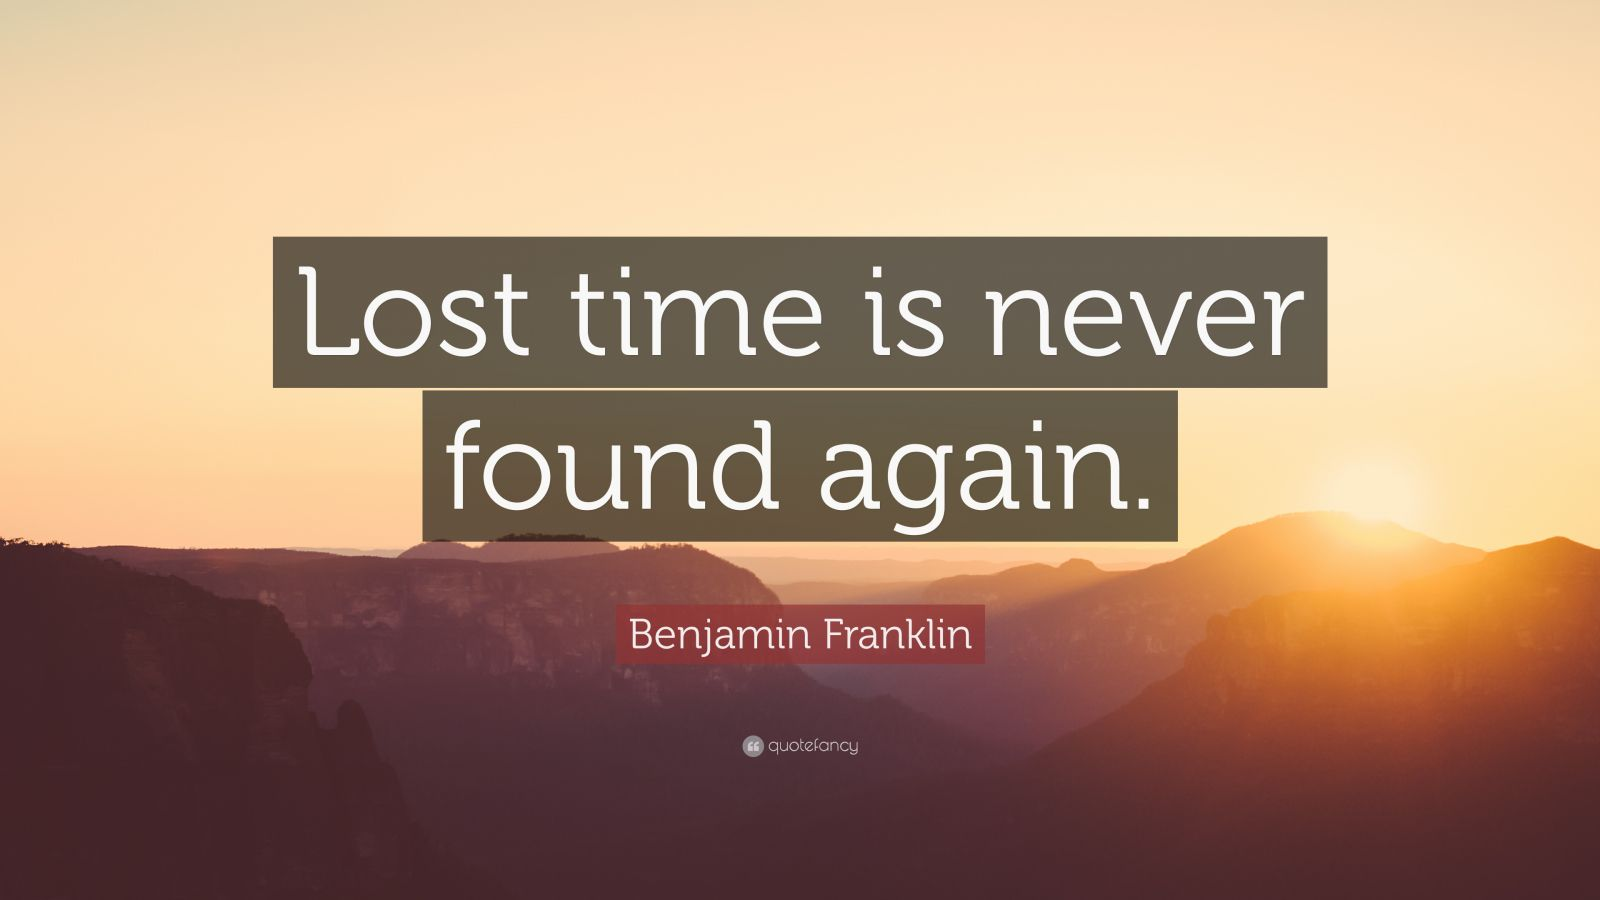 time is never found again In the end only three things matter how much you loved how gently you lived and how gracefully you let go of things not meant for you the tired sunsets and tired people it takes a lifetime to die and no time at all.